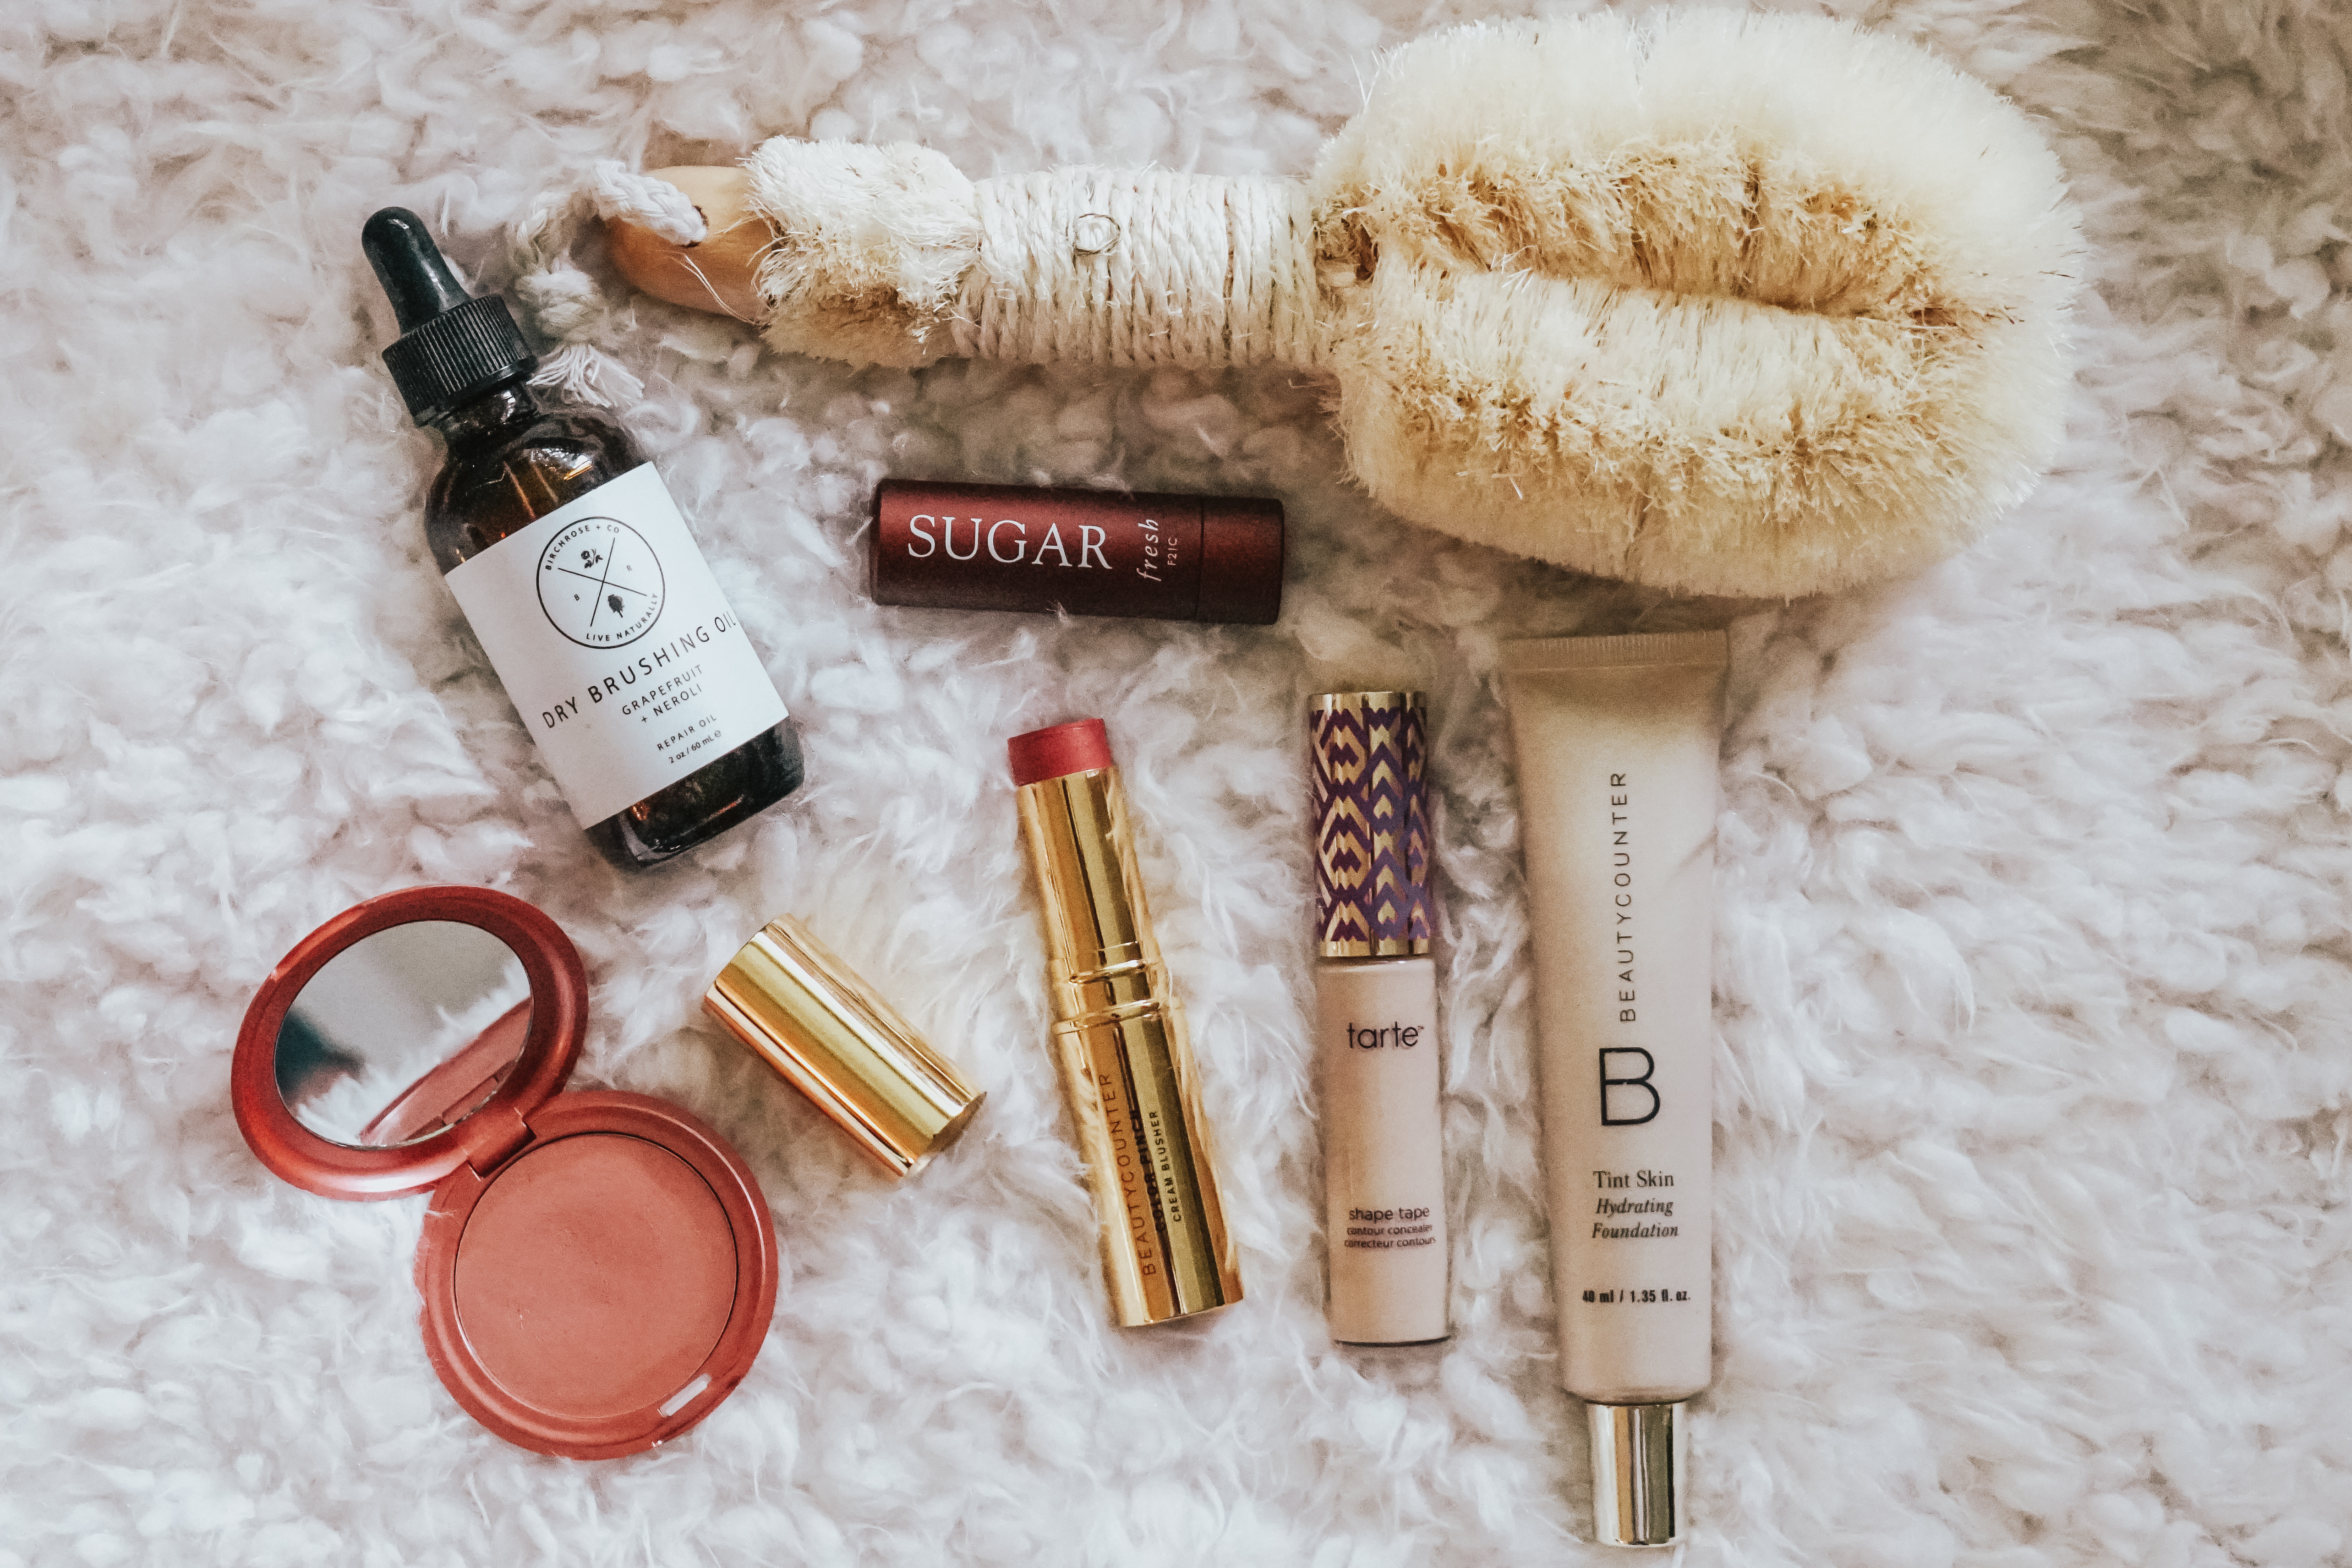 Okay mamas! My new mama must-haves are right here on the blog! We're talking everything from nursing staples to postpartum healing to simple beauty hacks!